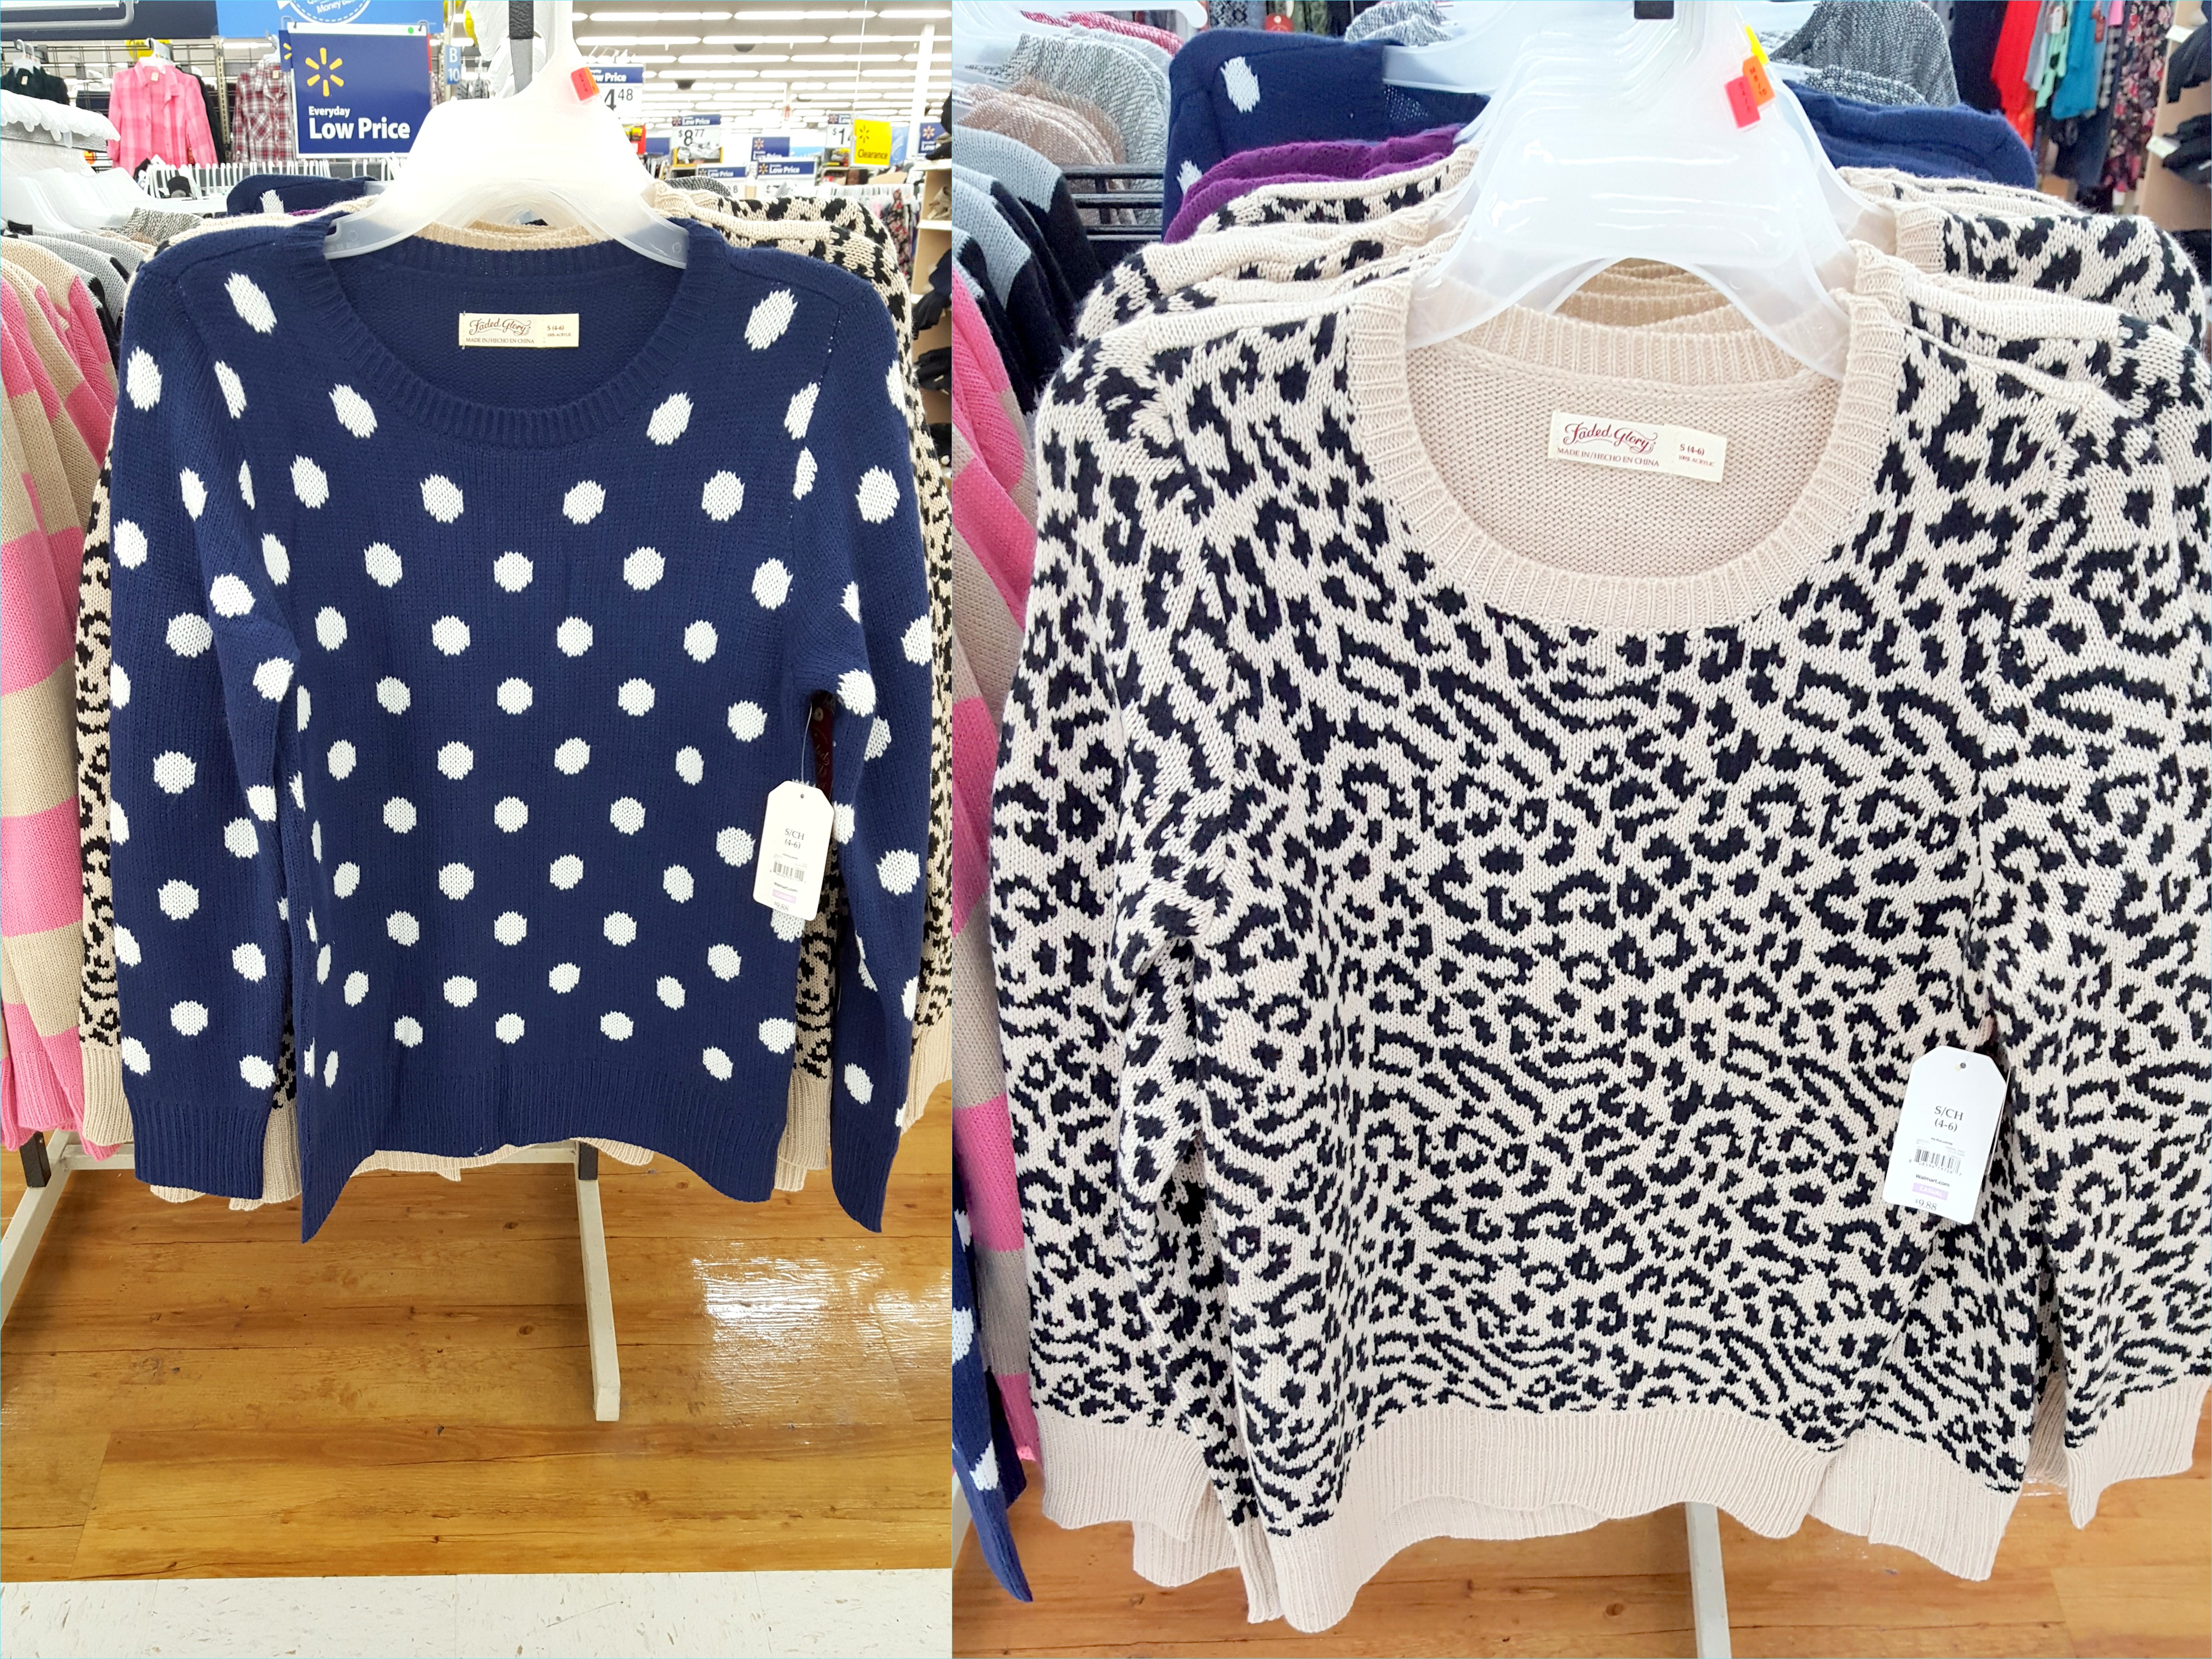 Black t shirt at walmart - Walmart Finds I May Go Back And Get This Sweater With Polka Dots I Am Really On The Long Hard Hunt For A White Sweater With Black Polka Dots